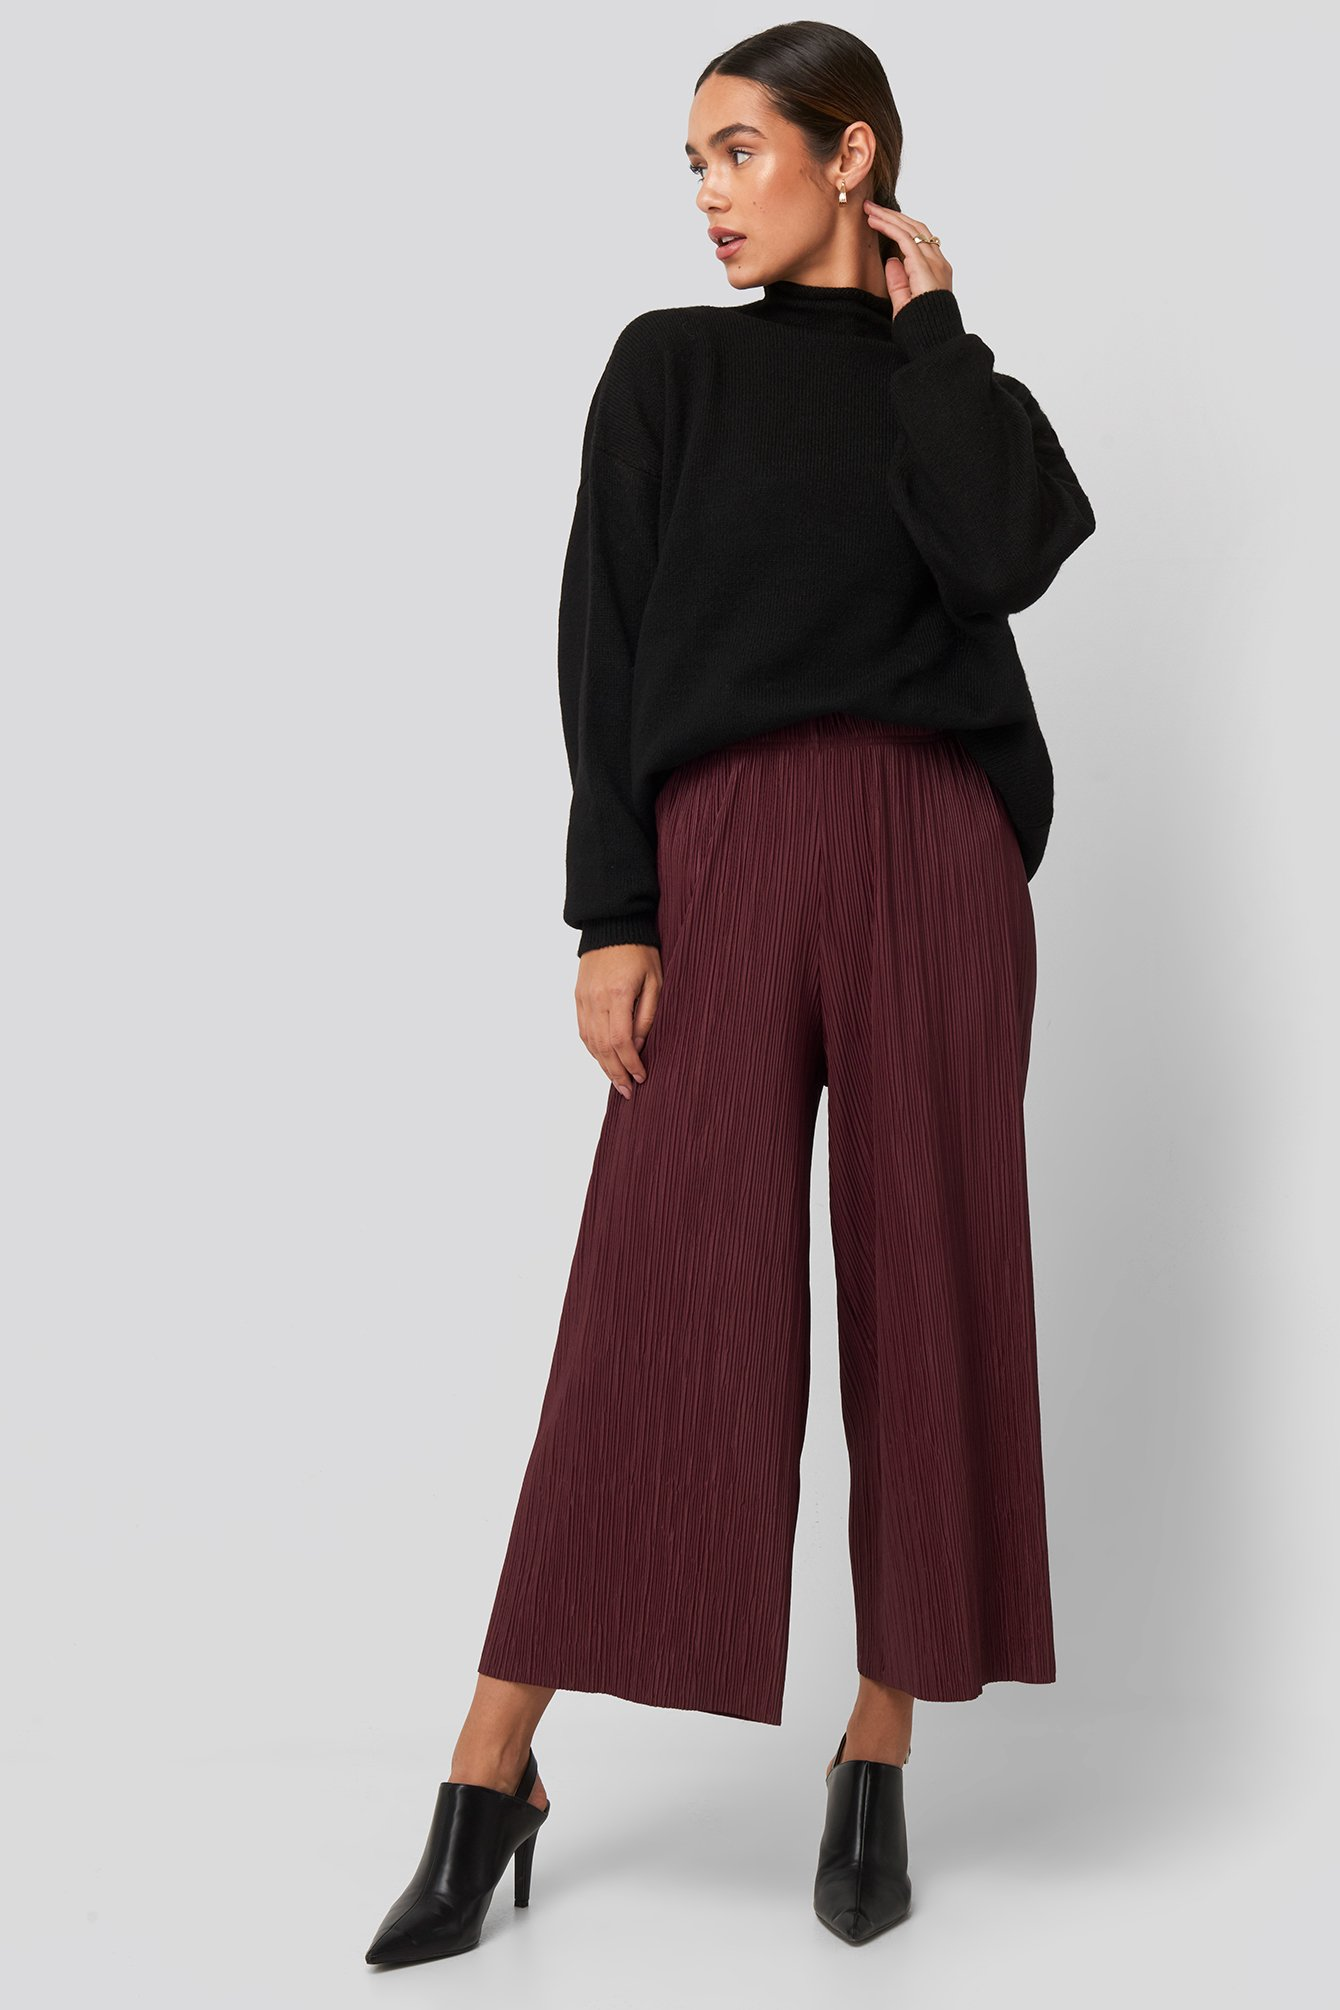 na-kd -  Cropped Plisse Culottes - Red,Purple